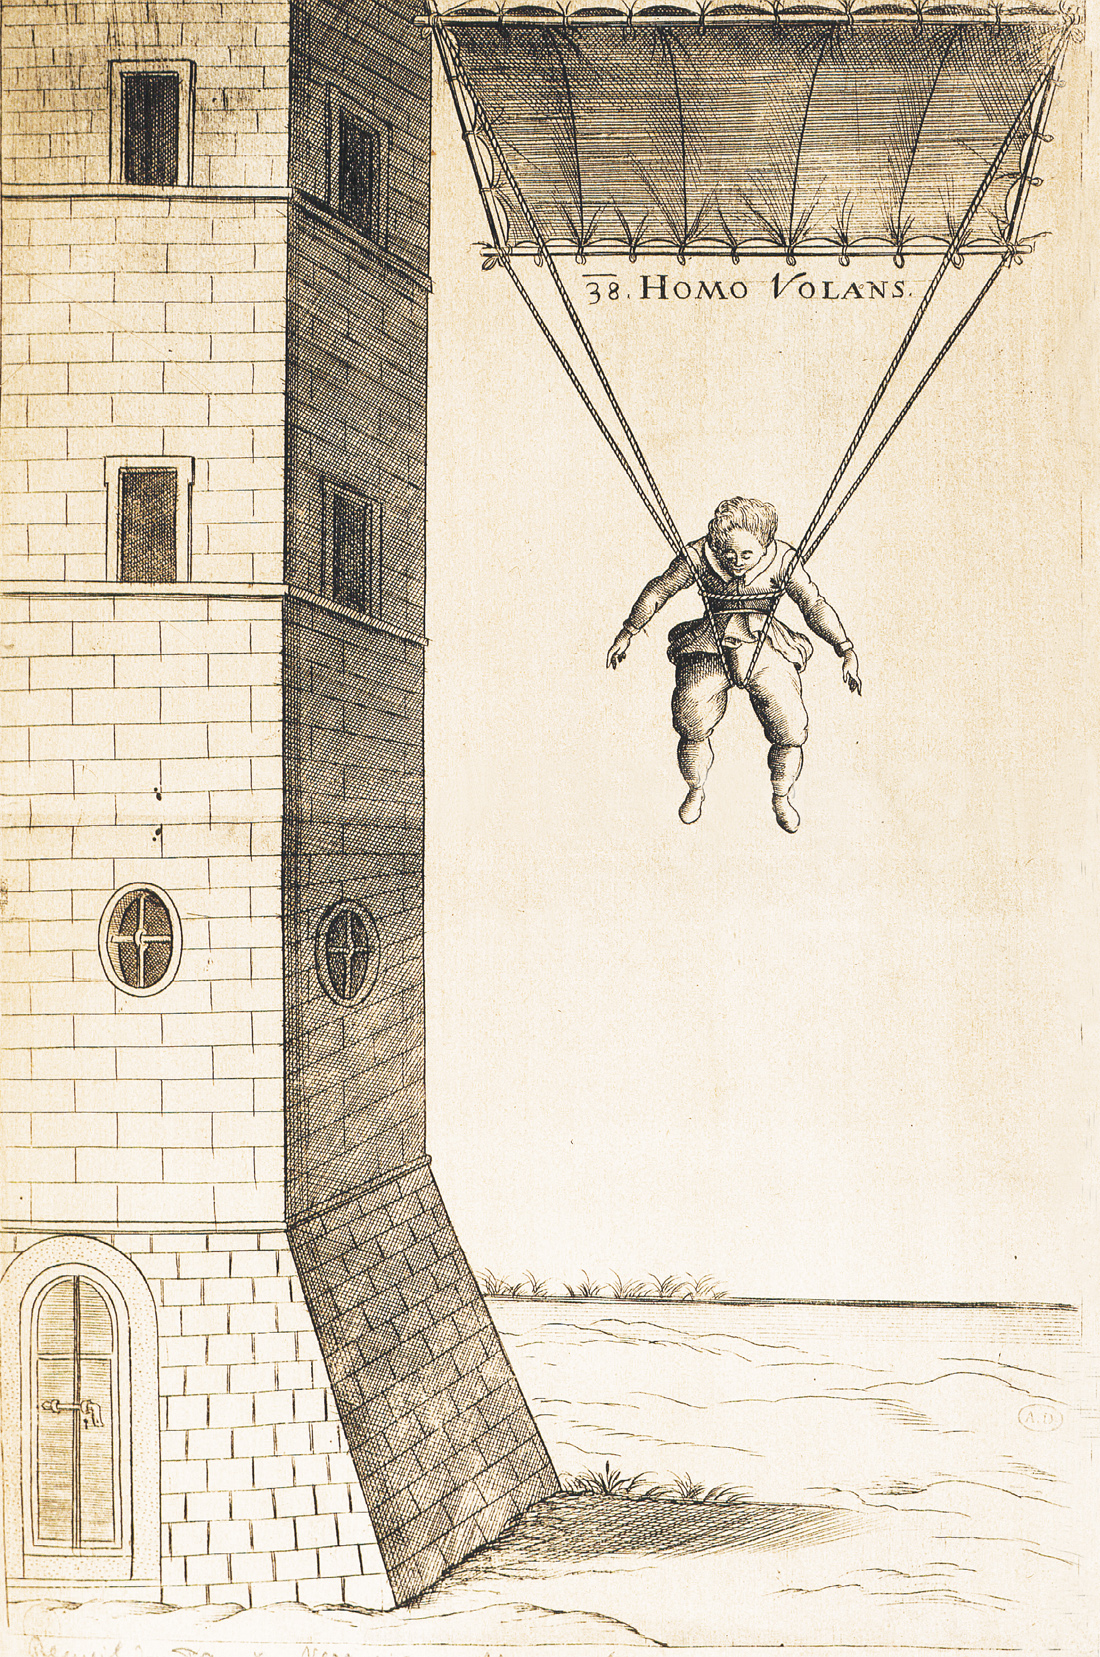 Engraving of Croatian mathematician Faust Vrančić jumping from a tower with a parachute, Italy, 1617.